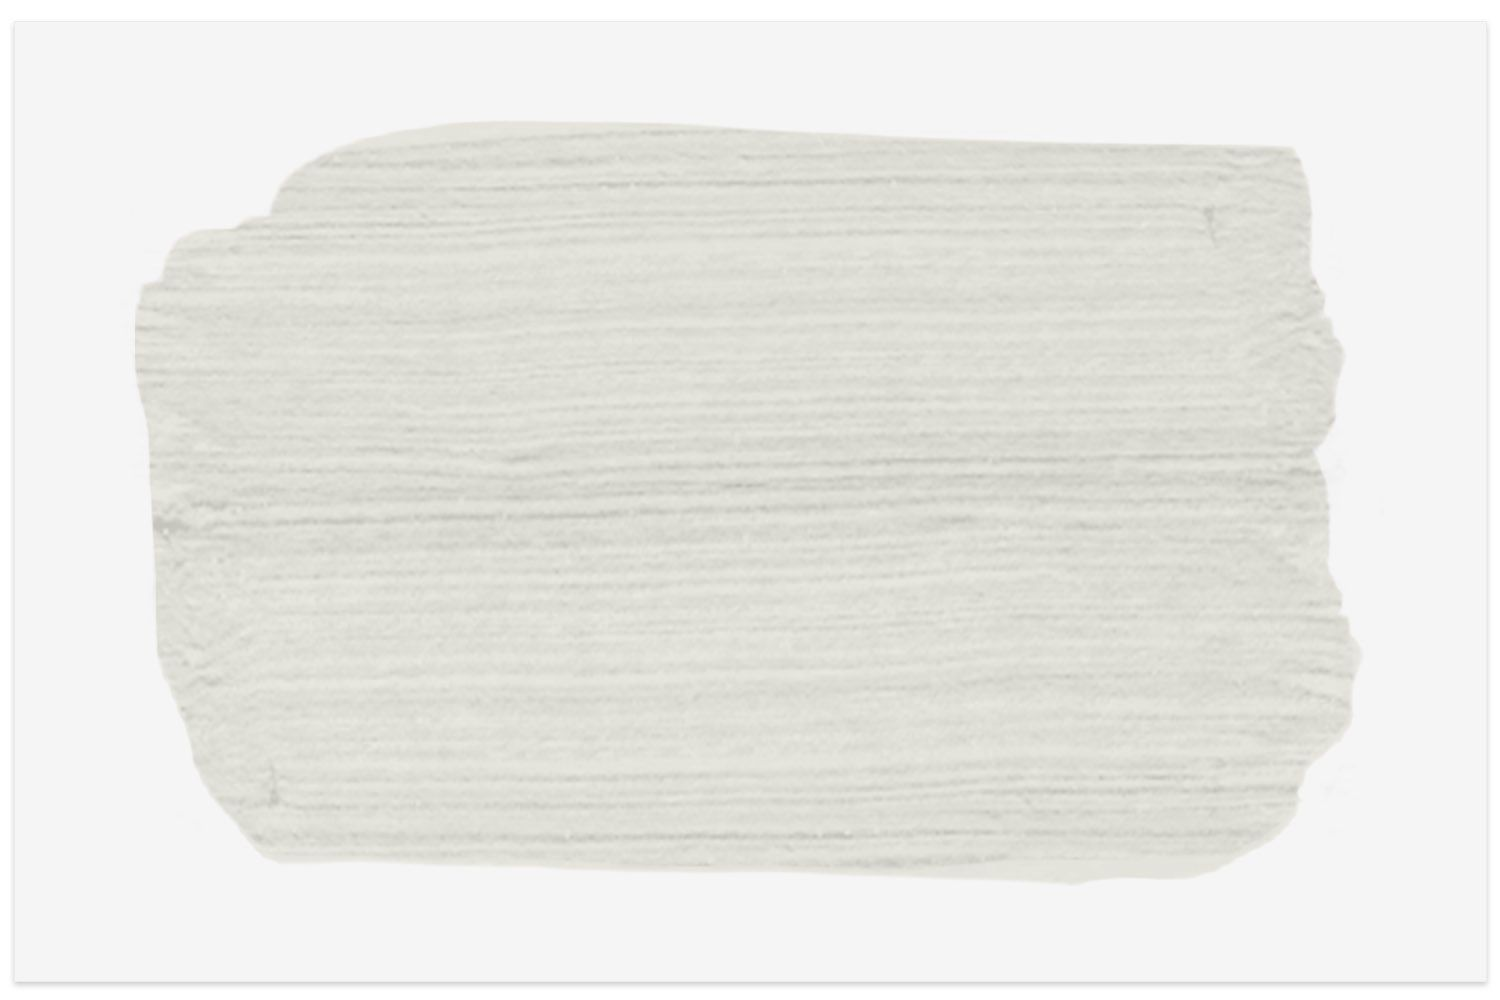 Shiplap paint swatch from Joanna Gaines paint collection